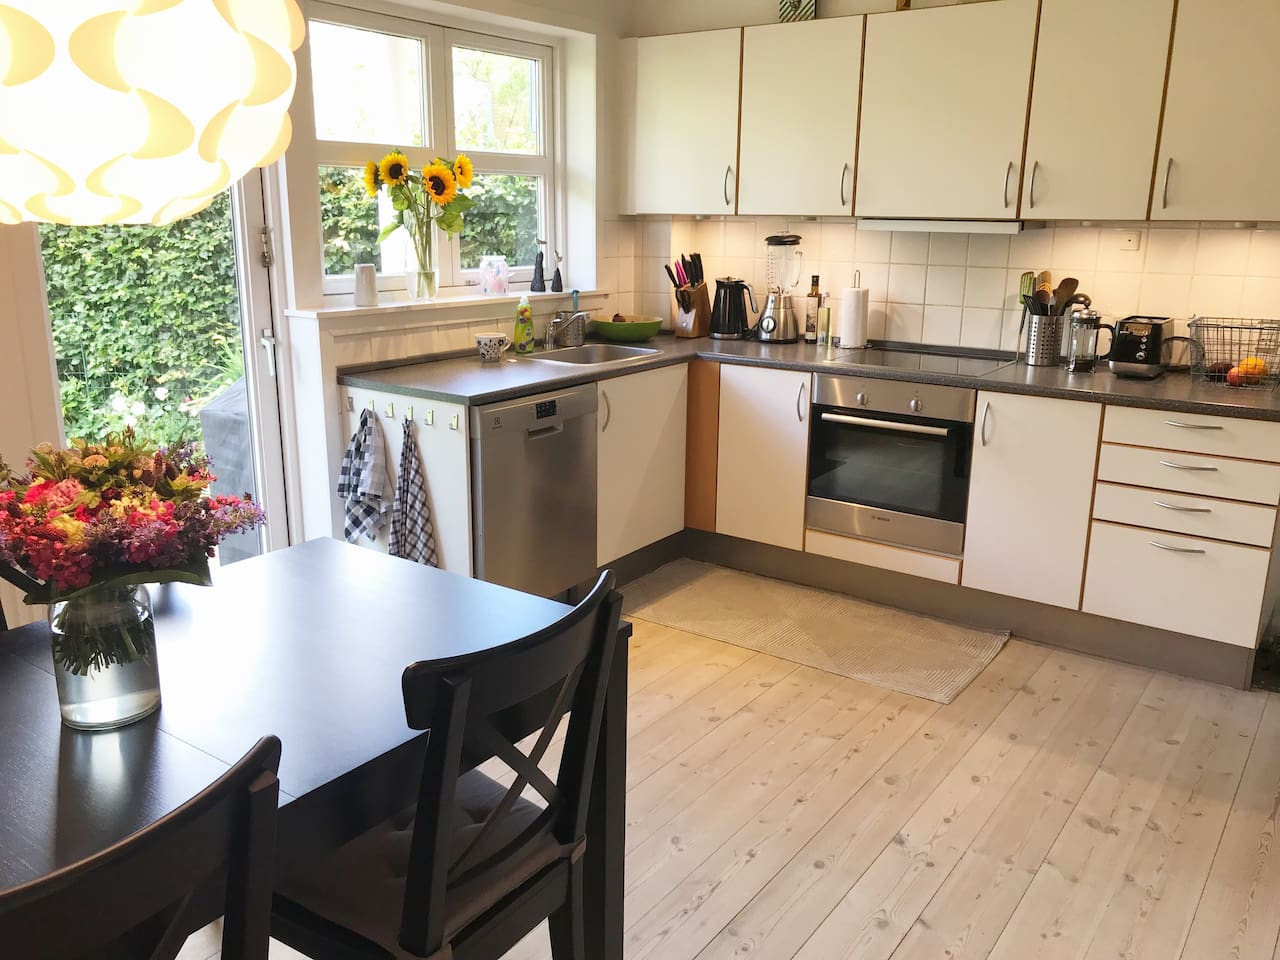 Spacious kitchen with dining table